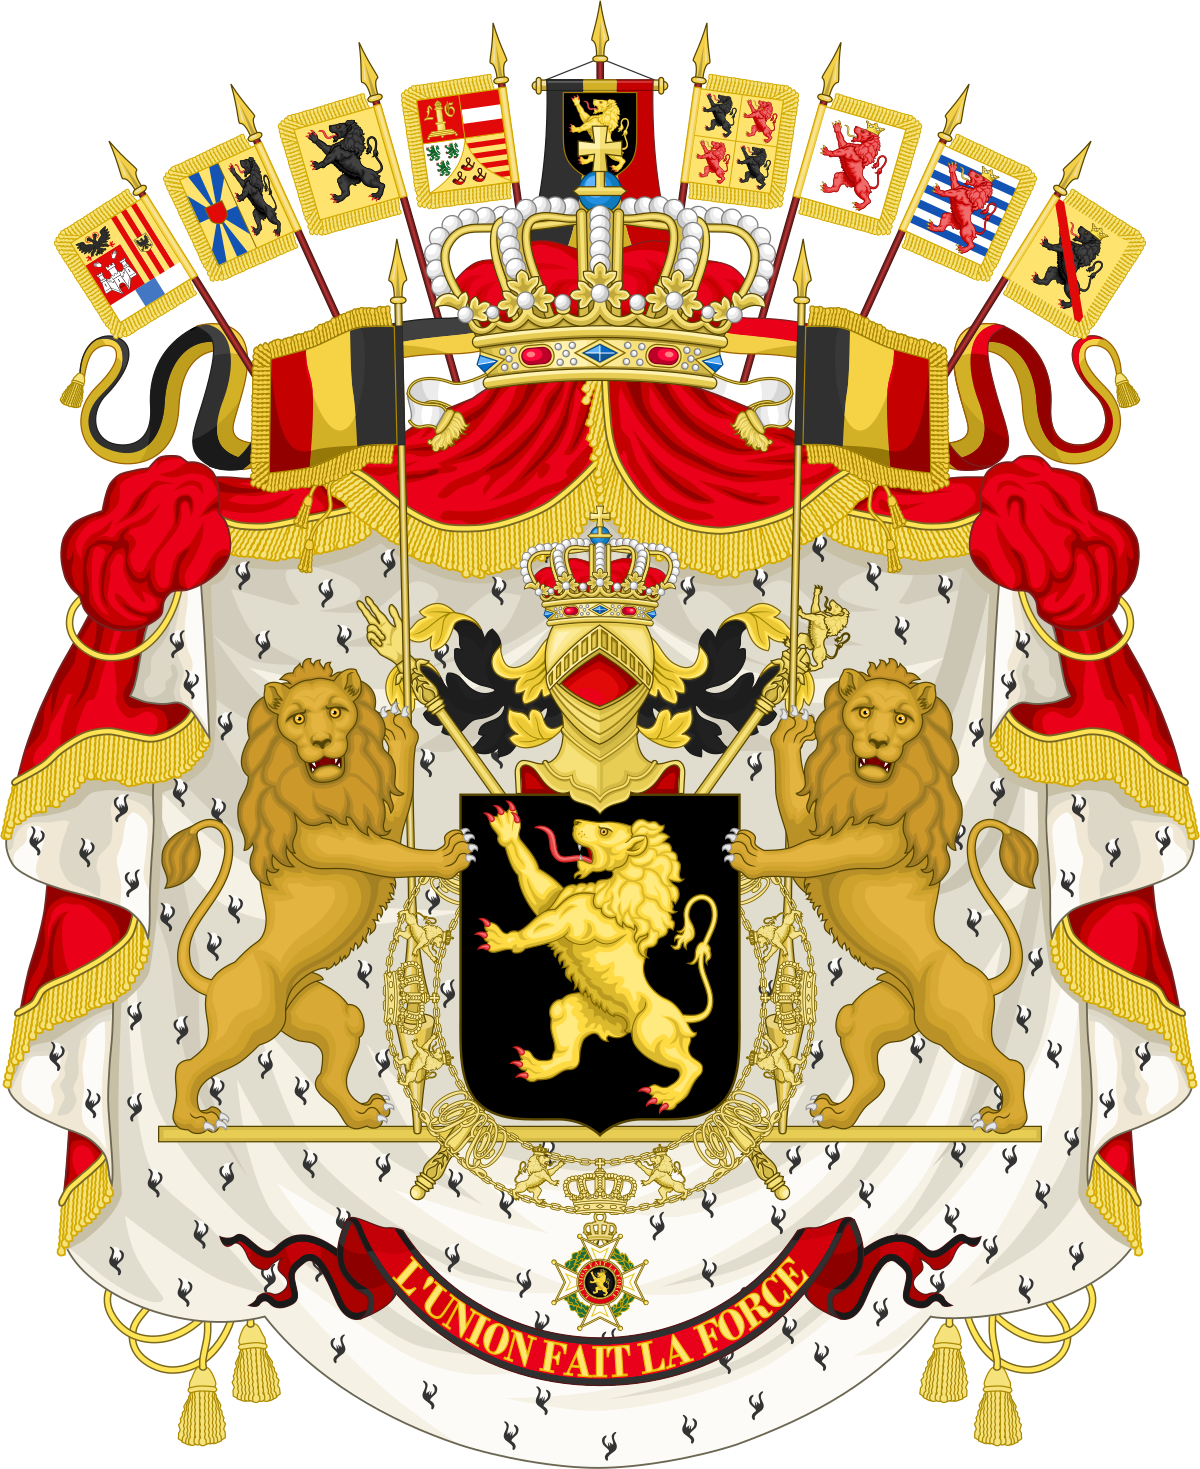 Mr clipart absolute monarchy. Coat of arms belgium